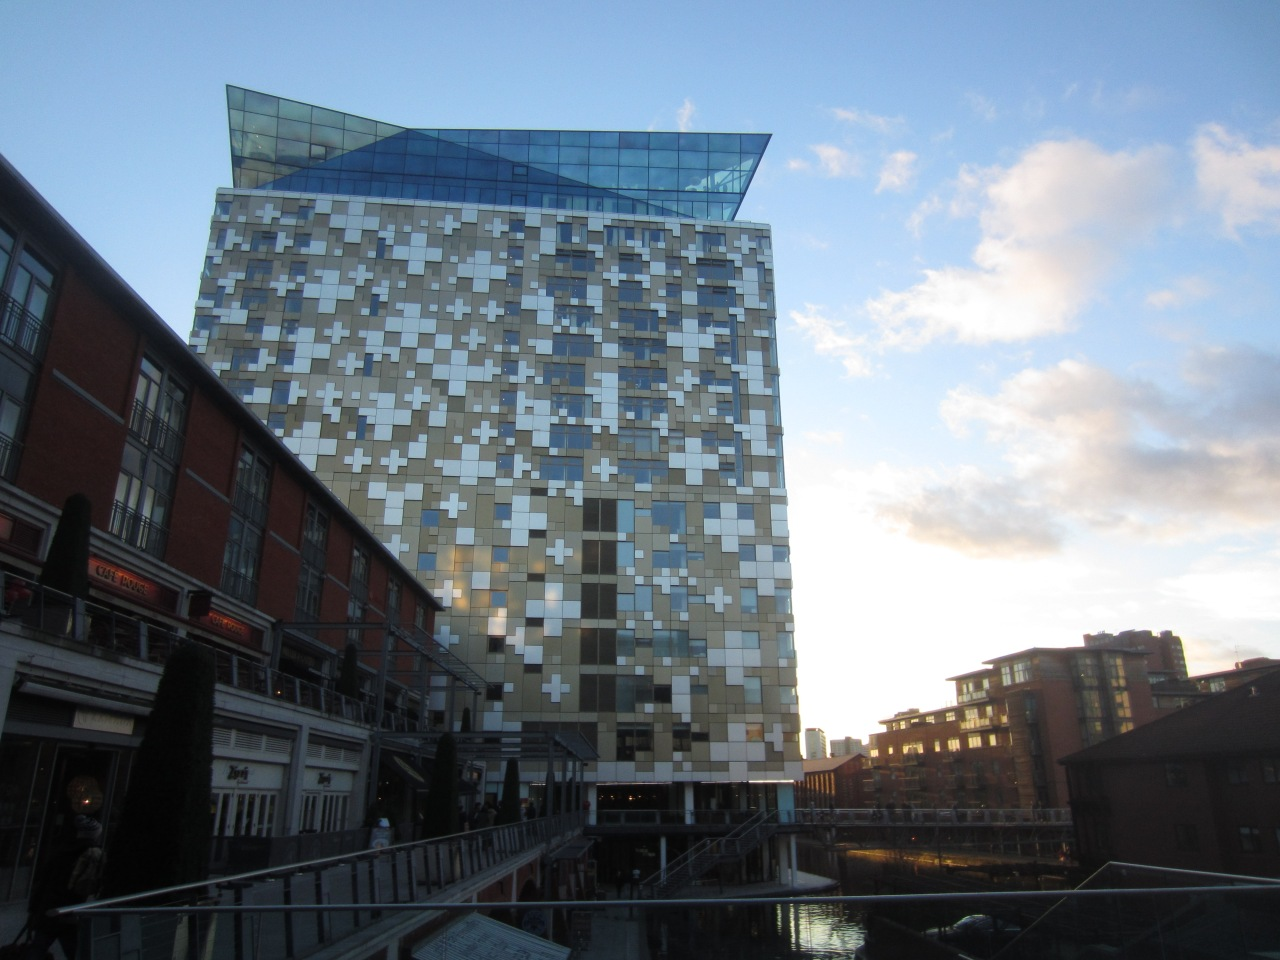 The view from The Cube,Birmingham